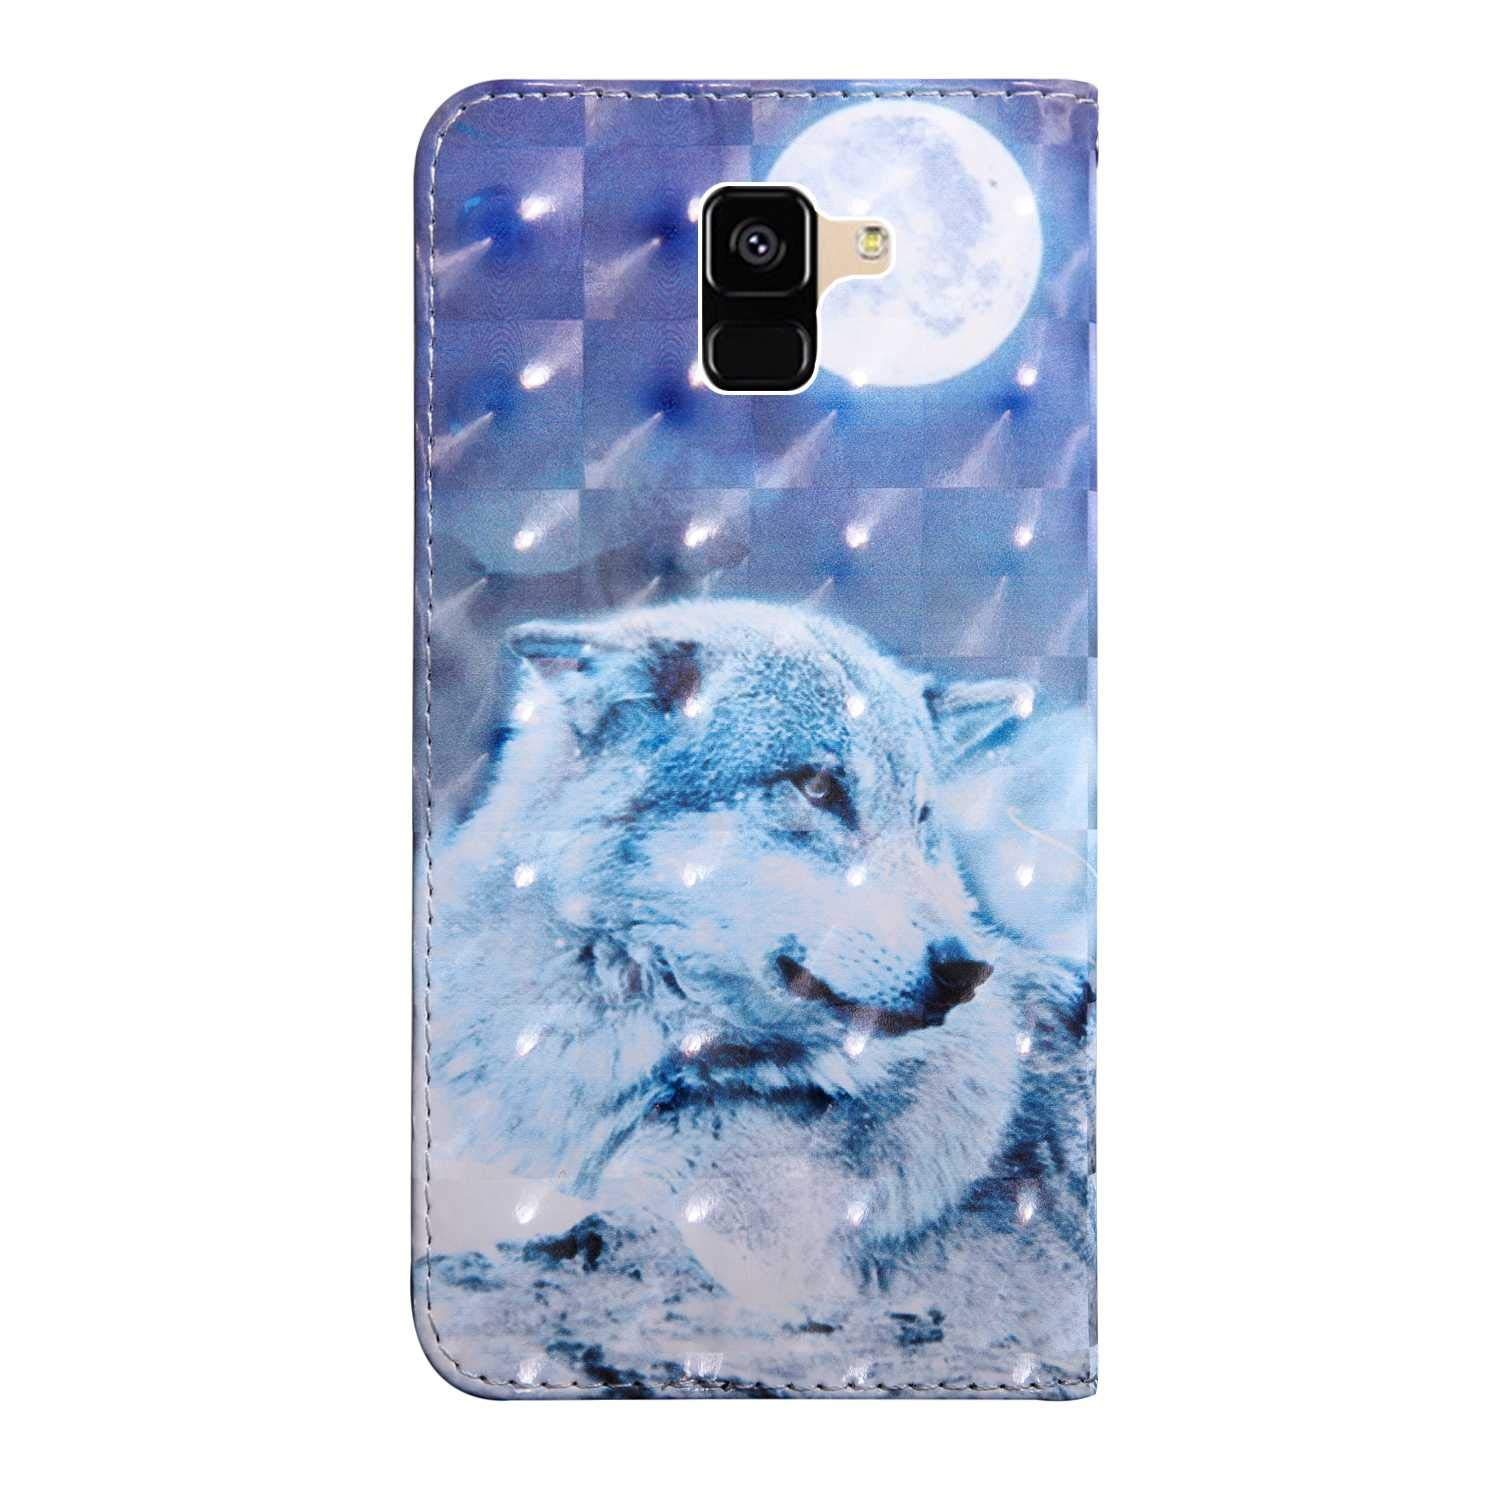 #7 Owl Bear Village Galaxy A8 Plus 2018 Case PU Leather Book Style Cover with Card Slots 3D Pattern Design Wallet Flip Case for Samsung Galaxy A8 Plus 2018